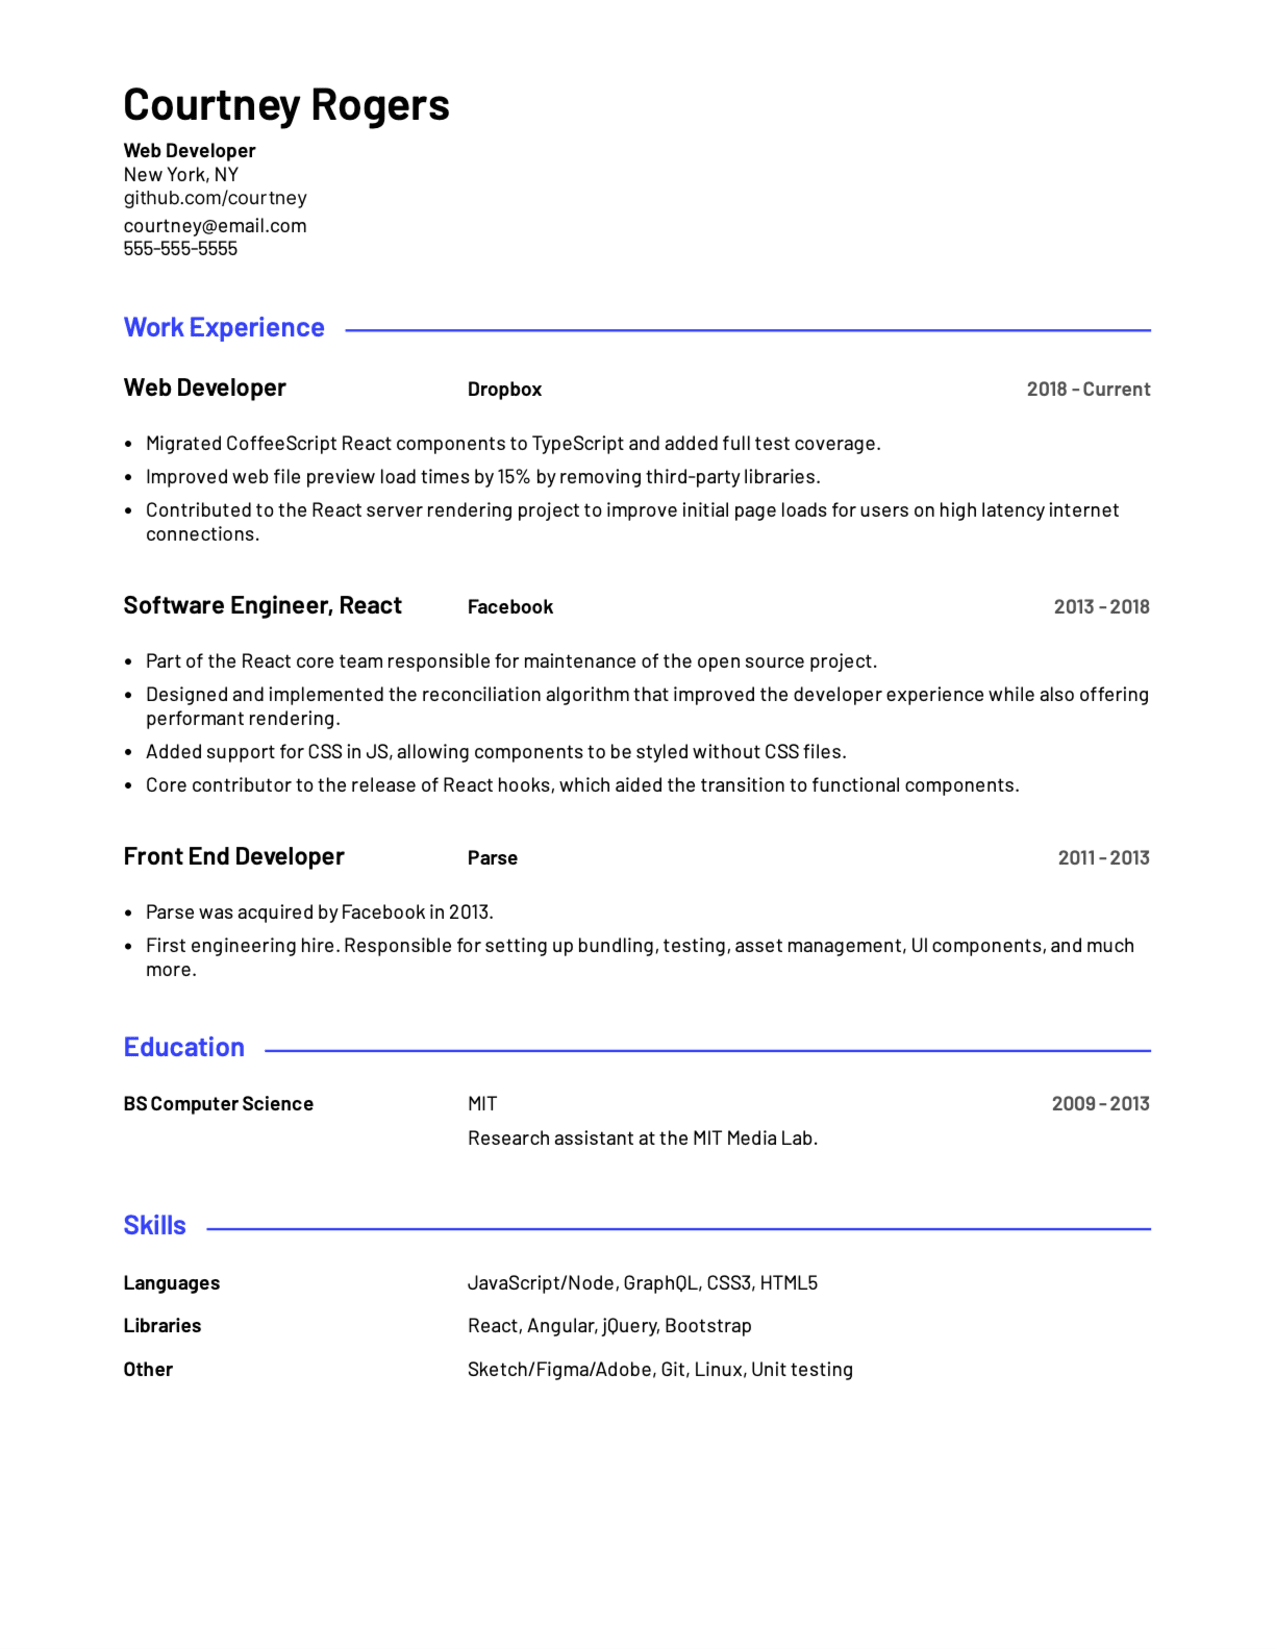 Resume sample for web developer. Built with Standard Resume onlin resume builder.